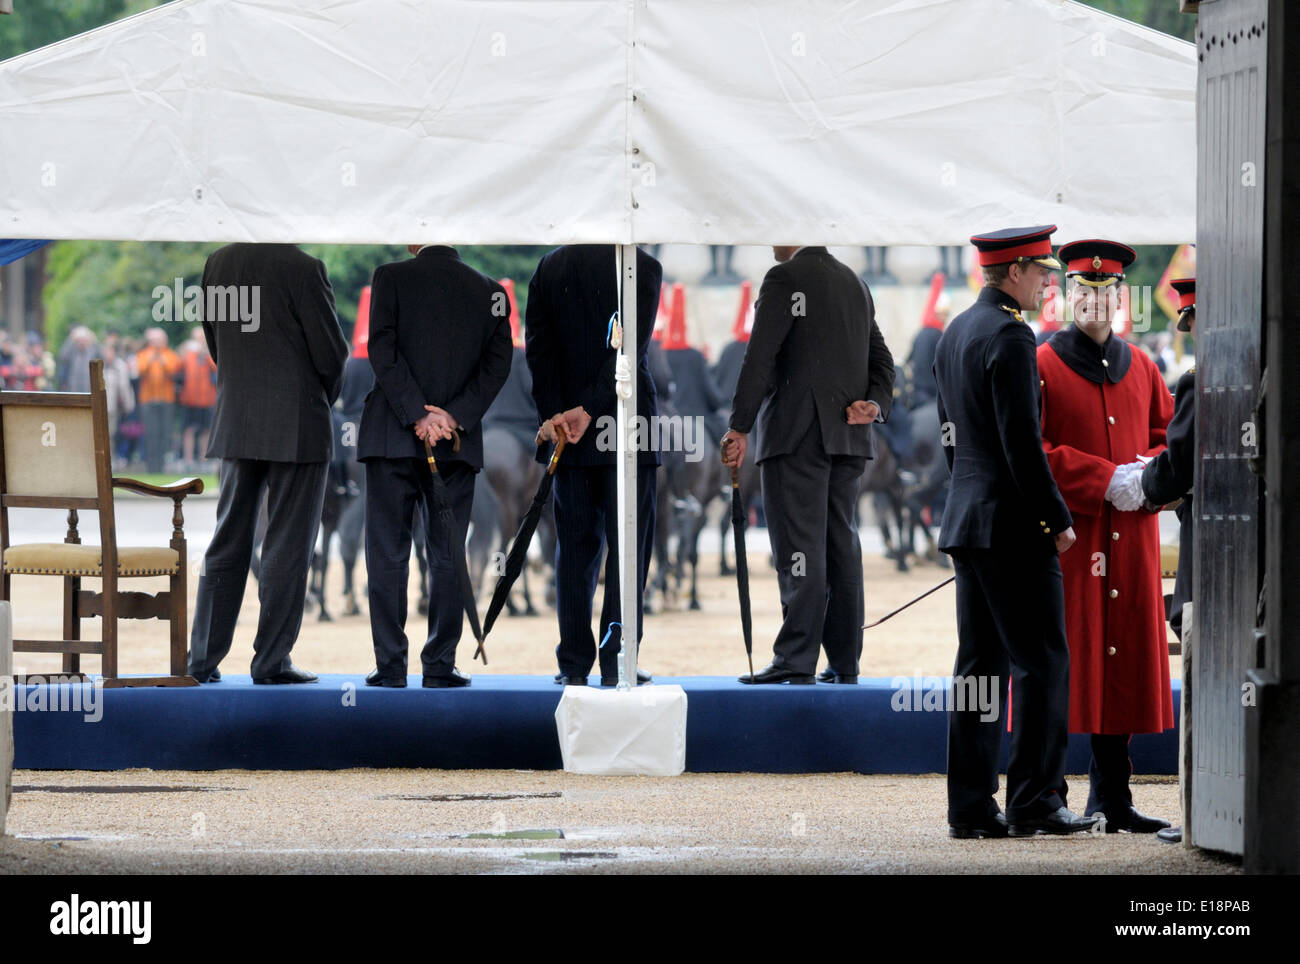 London, 26th May. Rehearsal in the rain for the Presentation of Standards to the Household Cavalry on Wednesday 28th in Horseguards Parade - Stock Image